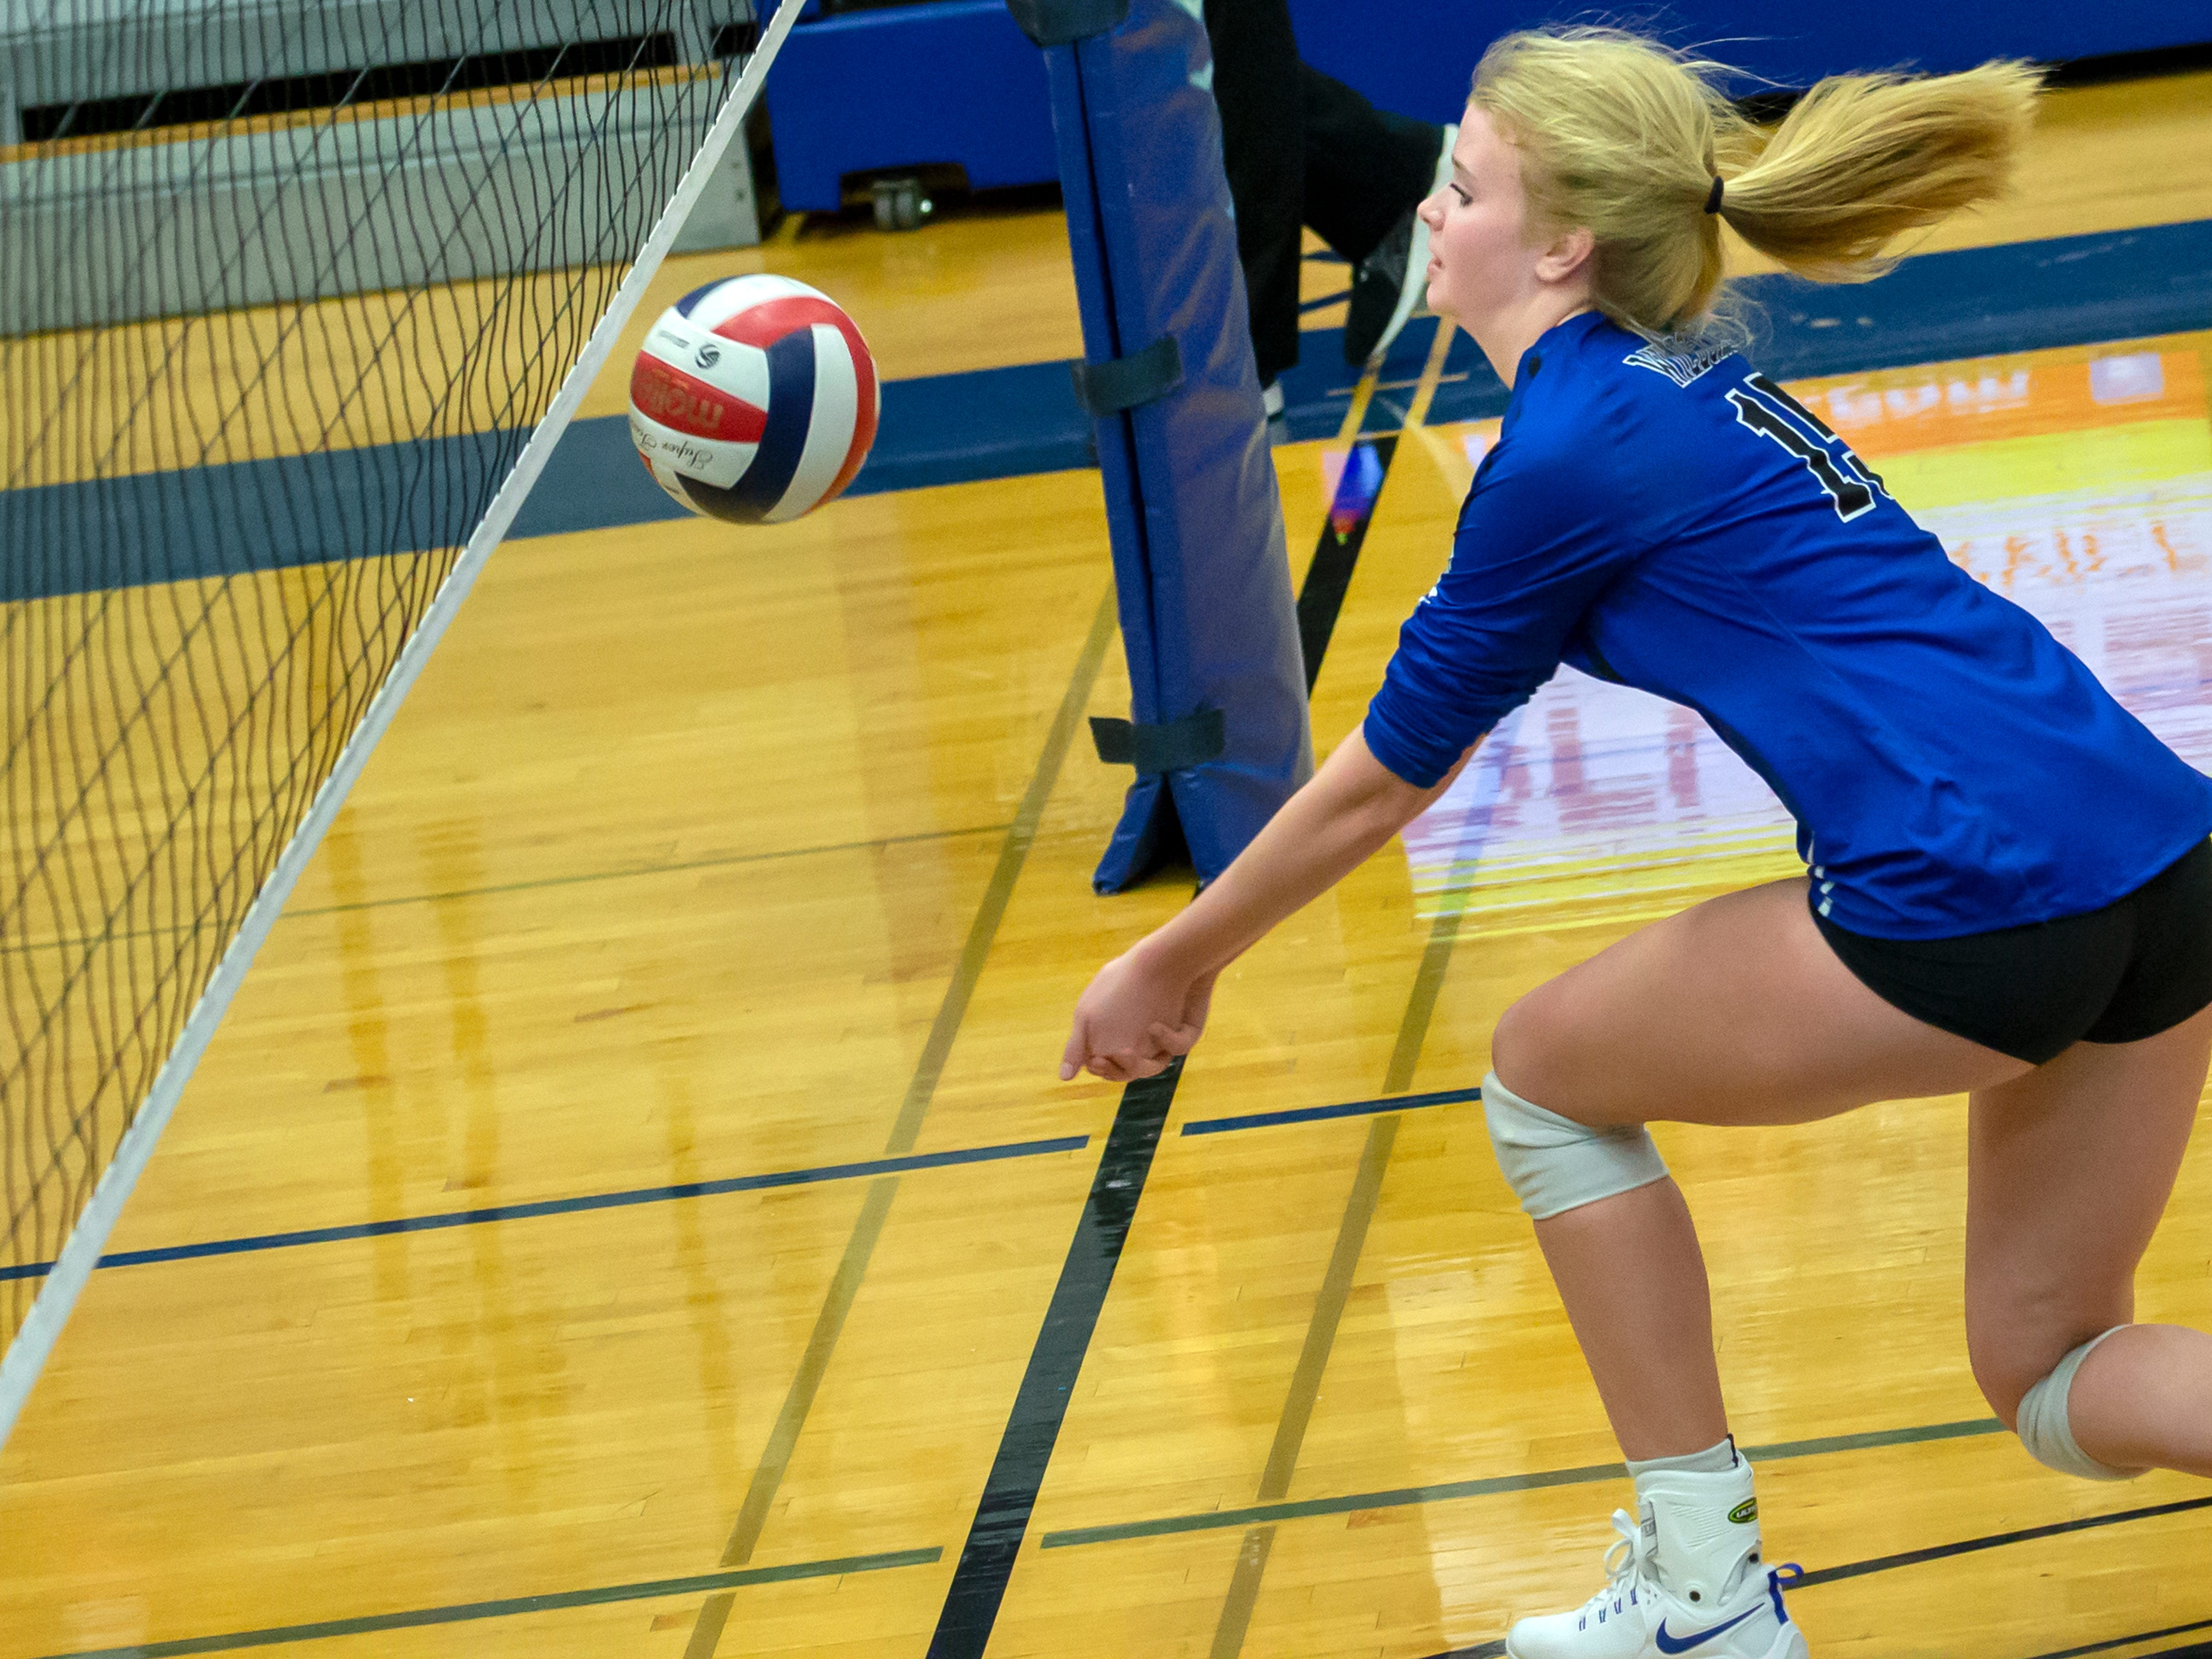 Oshkosh West's Randi Wellhoefer attempts to save the ball off the net playing at Oshkosh West High School on Thursday, October 11, 2018.